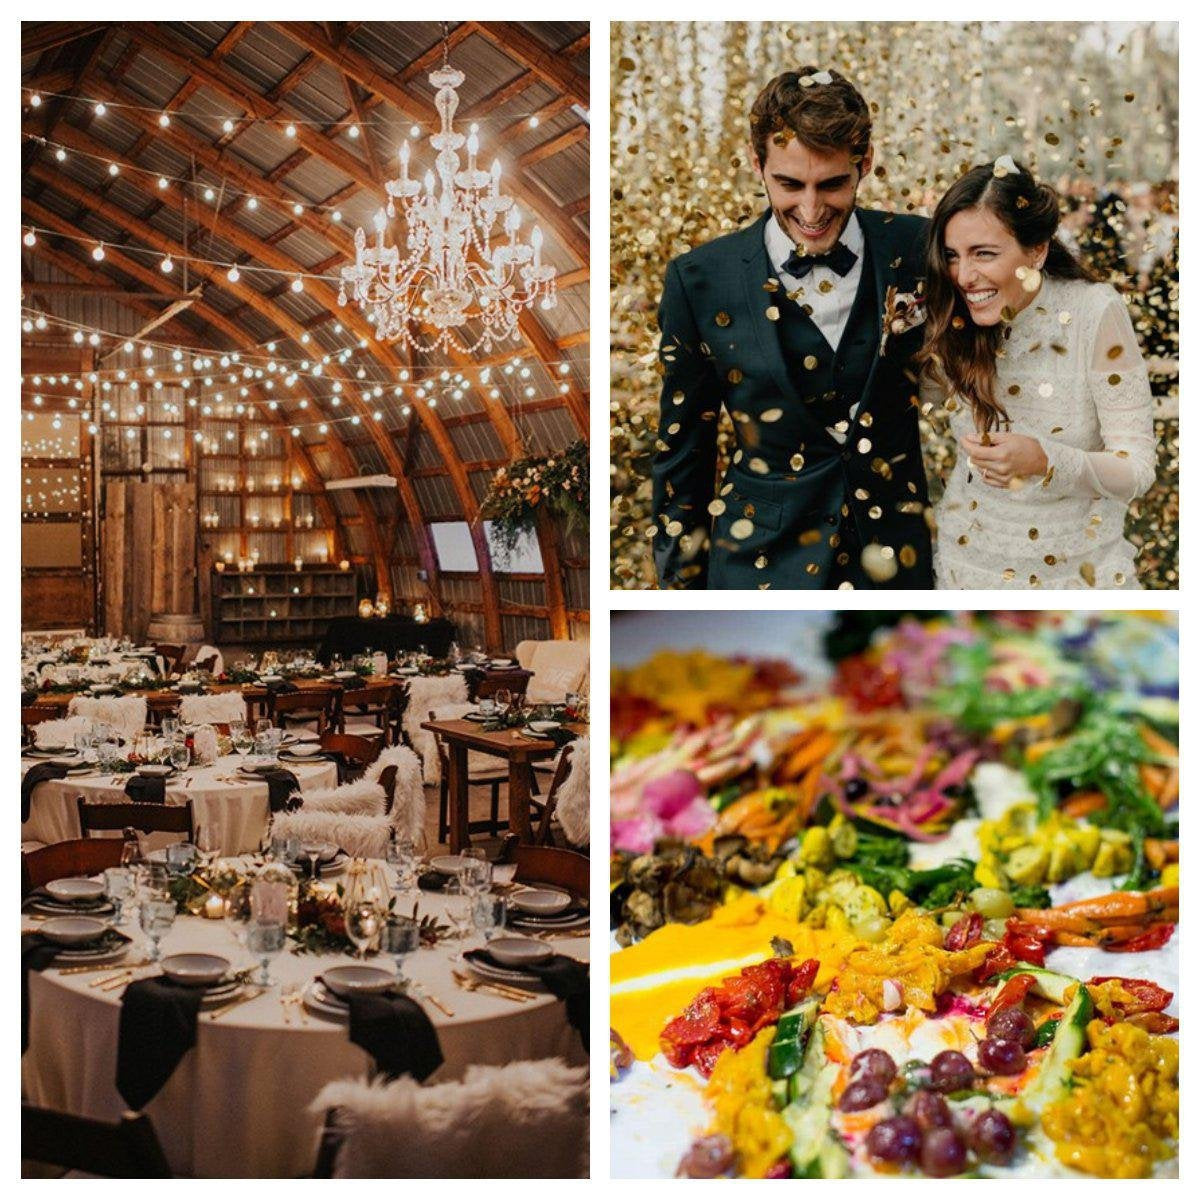 Our Top 10 Favorite New Year's Eve Wedding Tips From The Pros-Koyal Wholesale